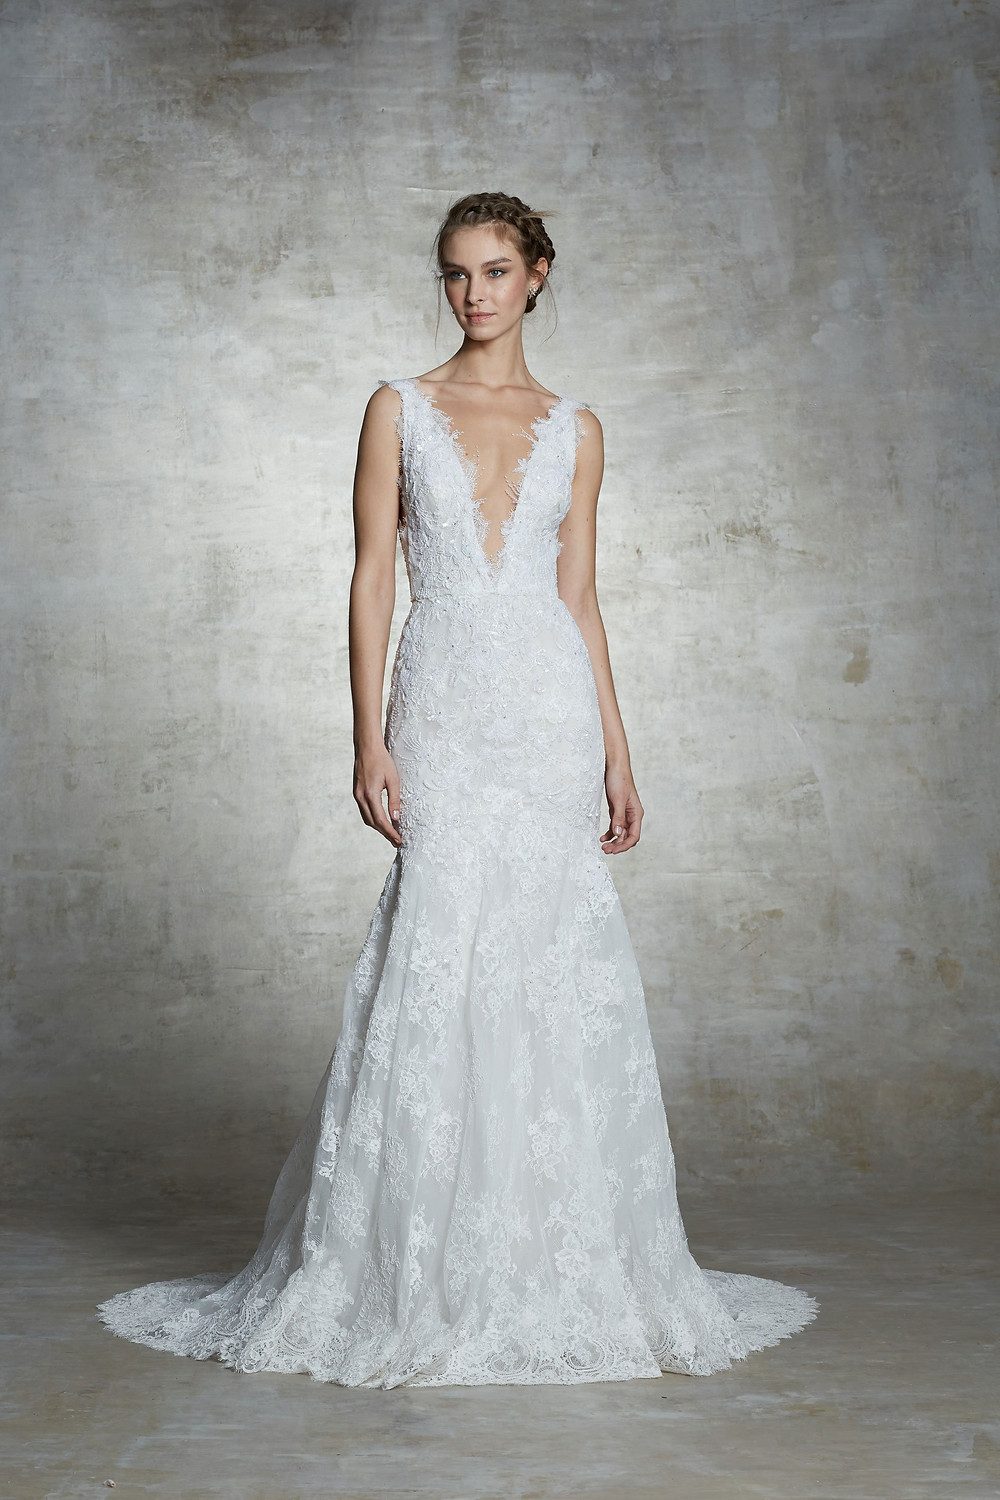 A Marchesa lace mermaid fit and flare wedding dress with a low v neckline